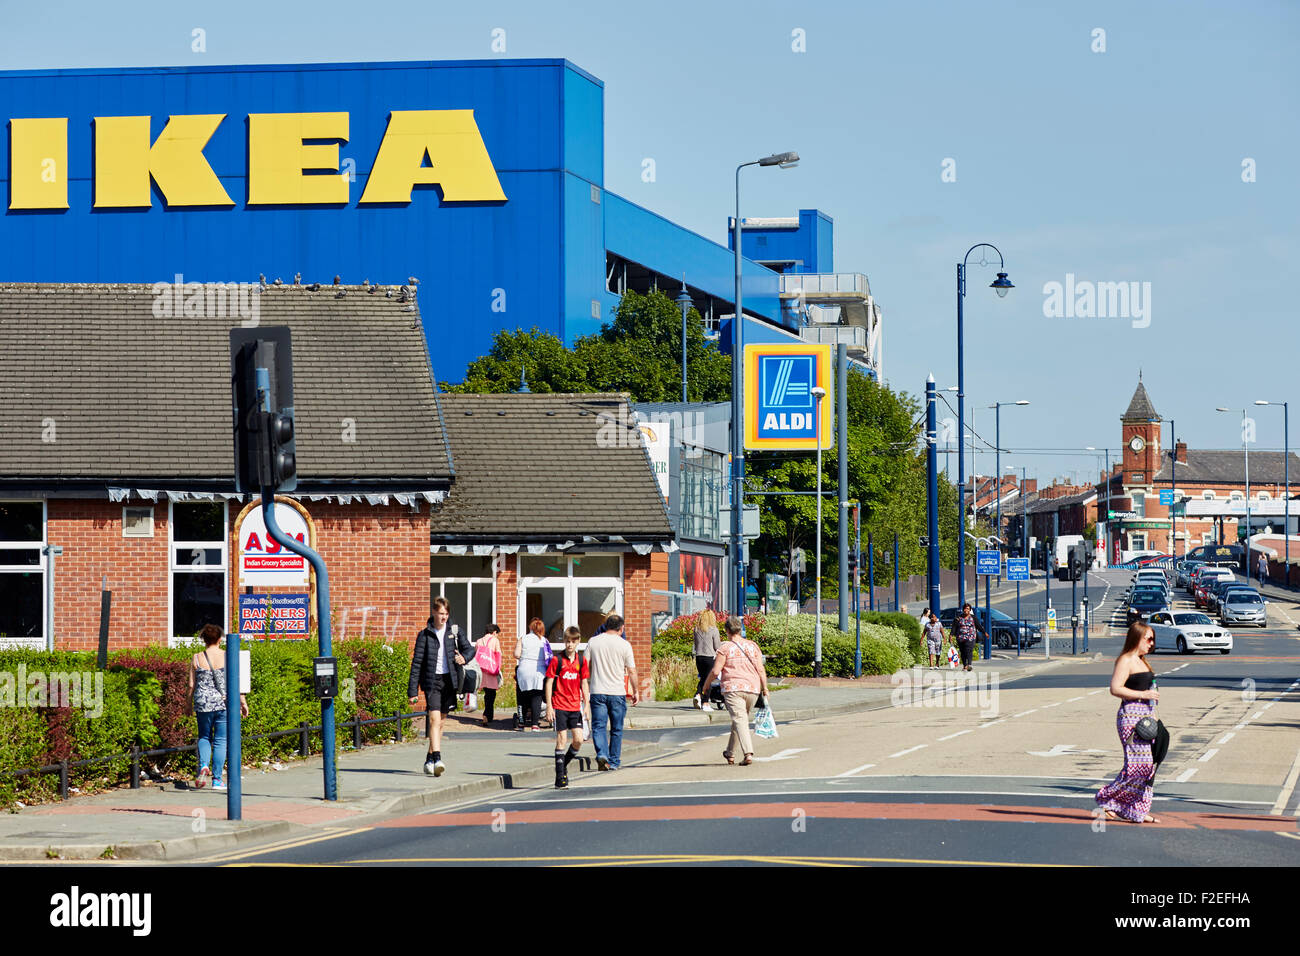 Ikea Furniture Store Exterior On A Sunny Day In Aston Under Lyne  # Muebles Jardin Ikea